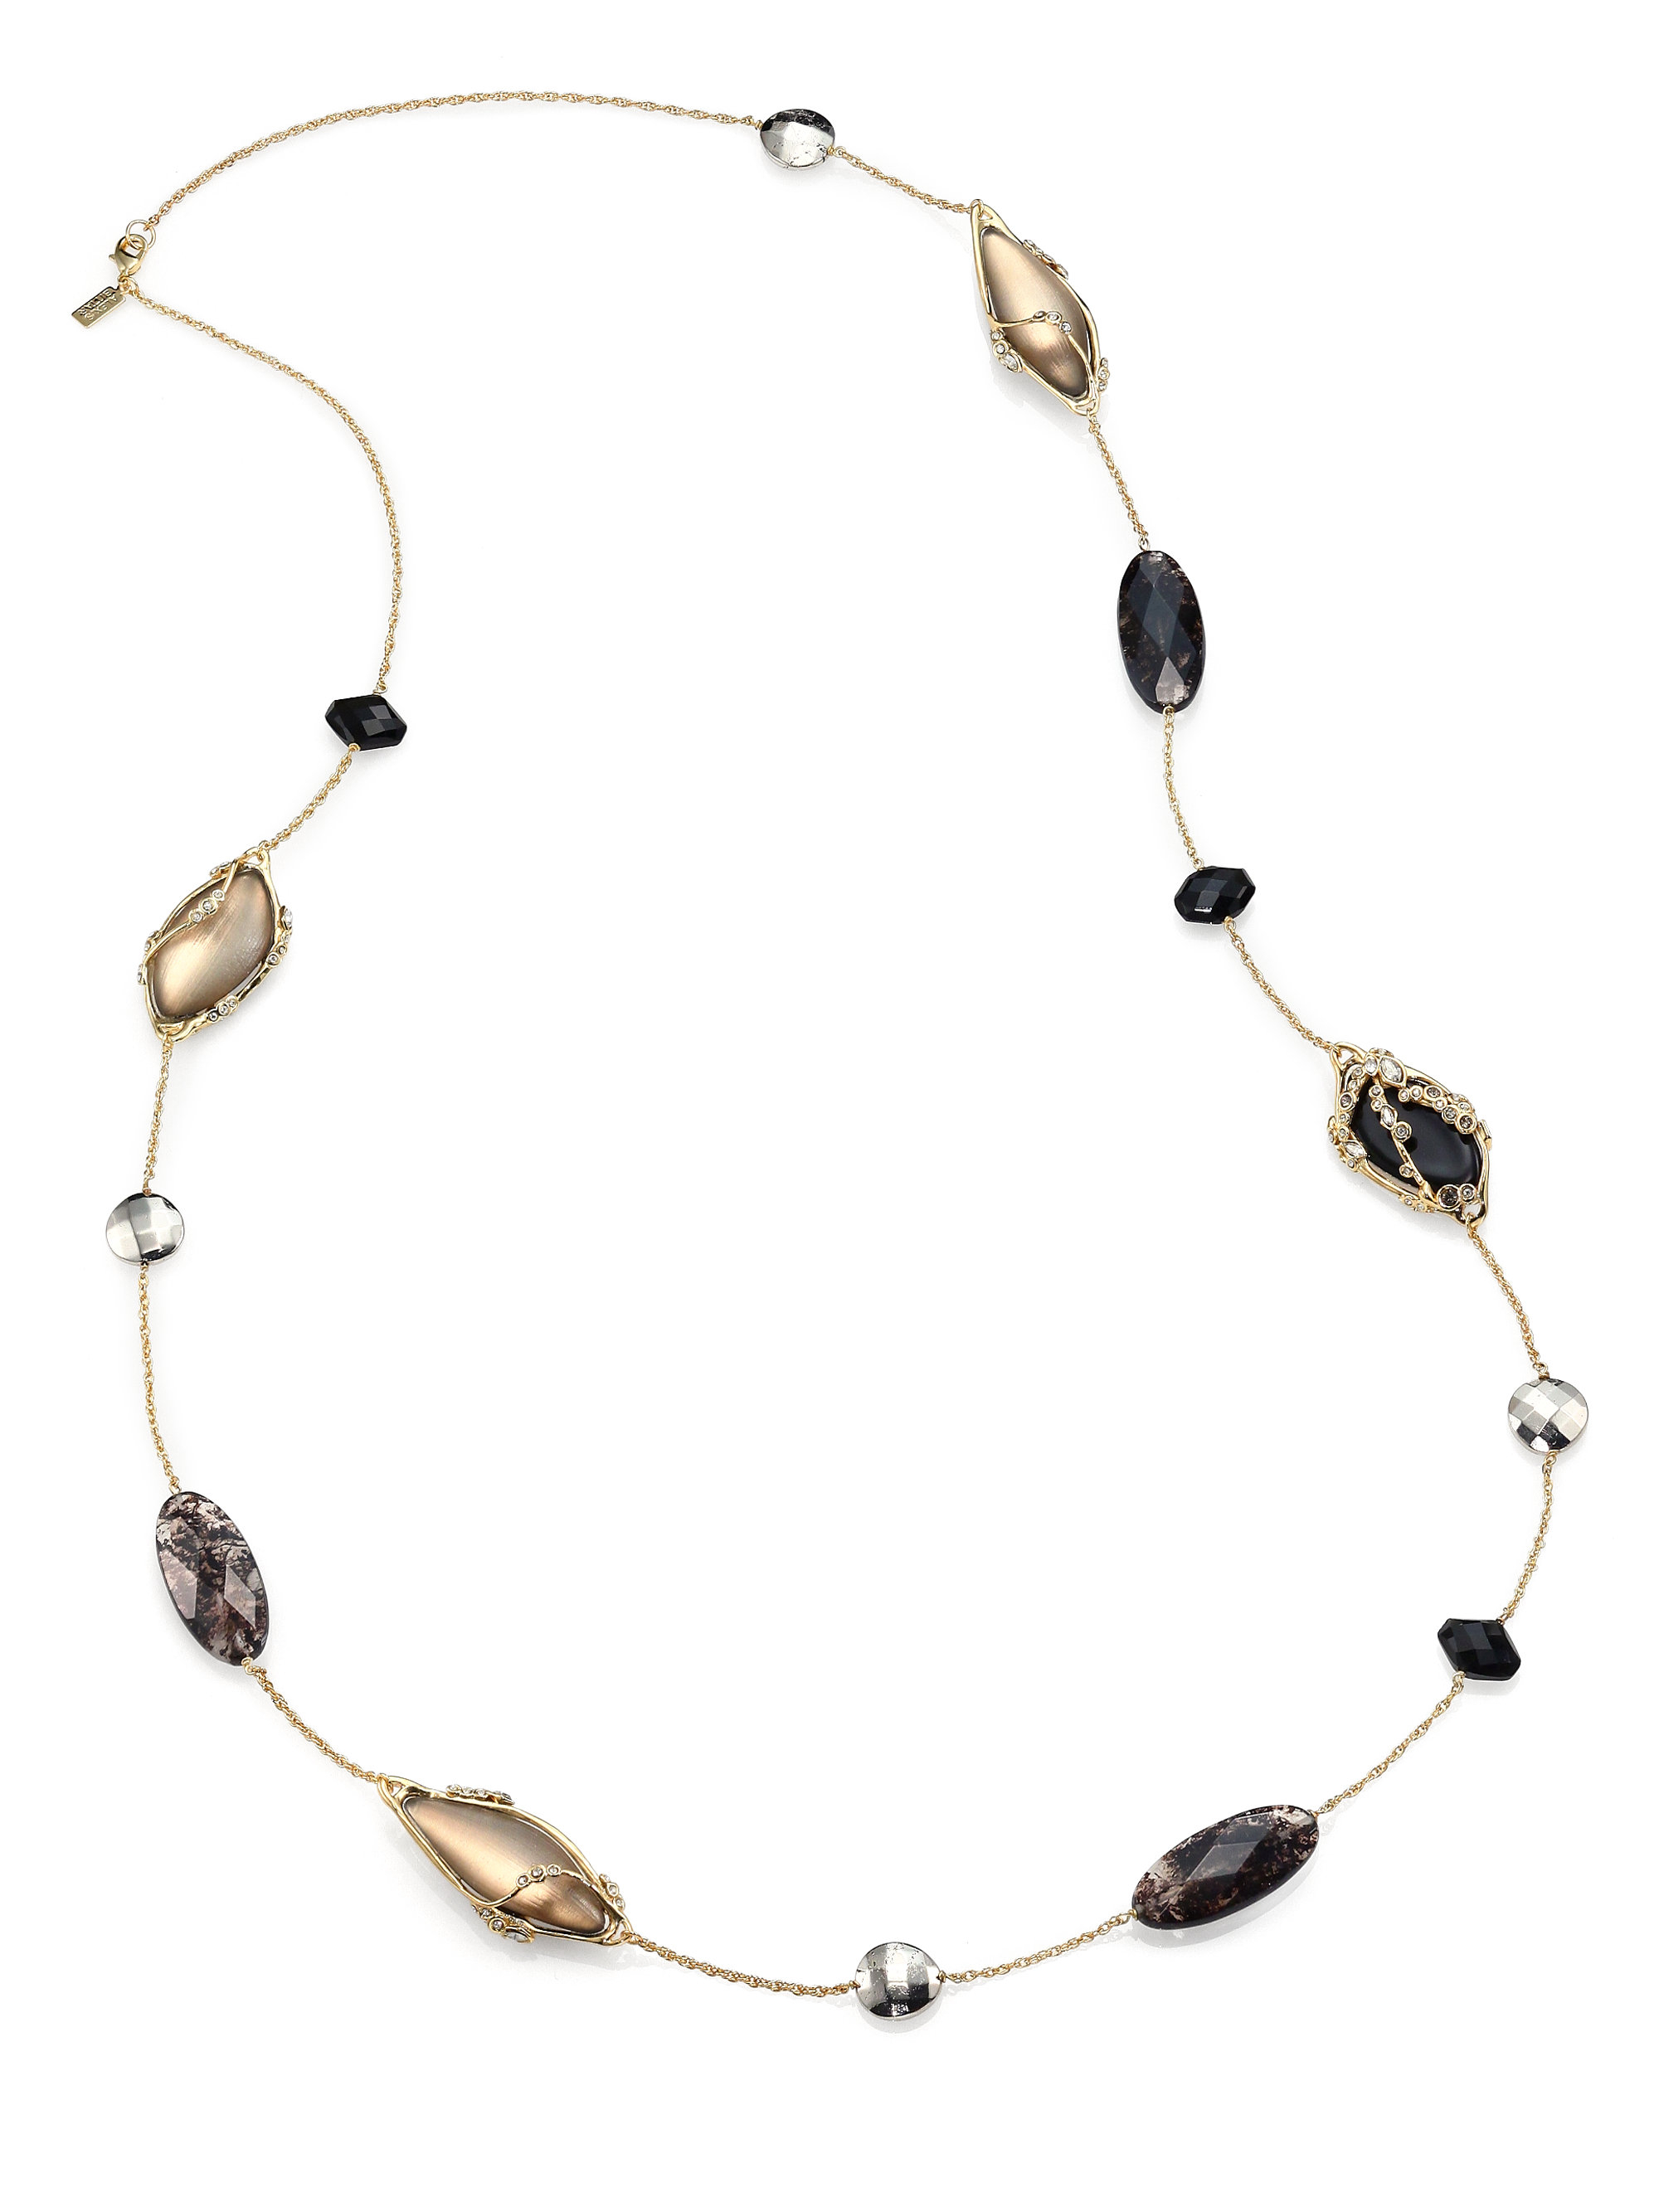 Alexis Bittar Long Beaded Crystal & Pyrite Necklace YS6Nr0Y4